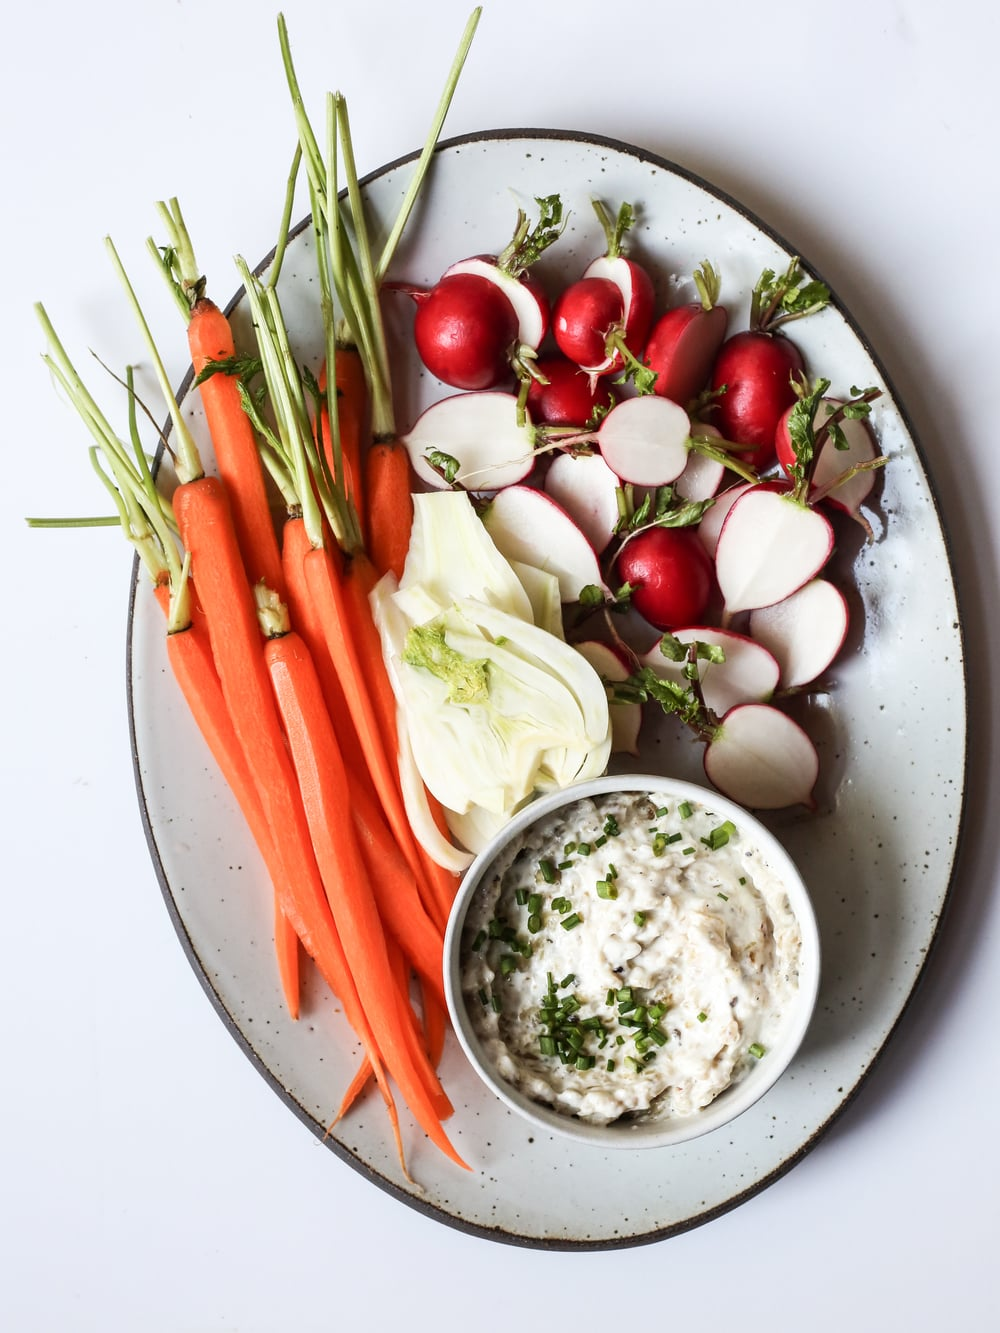 Crudités with Caramelized Shallot Yogurt Dip